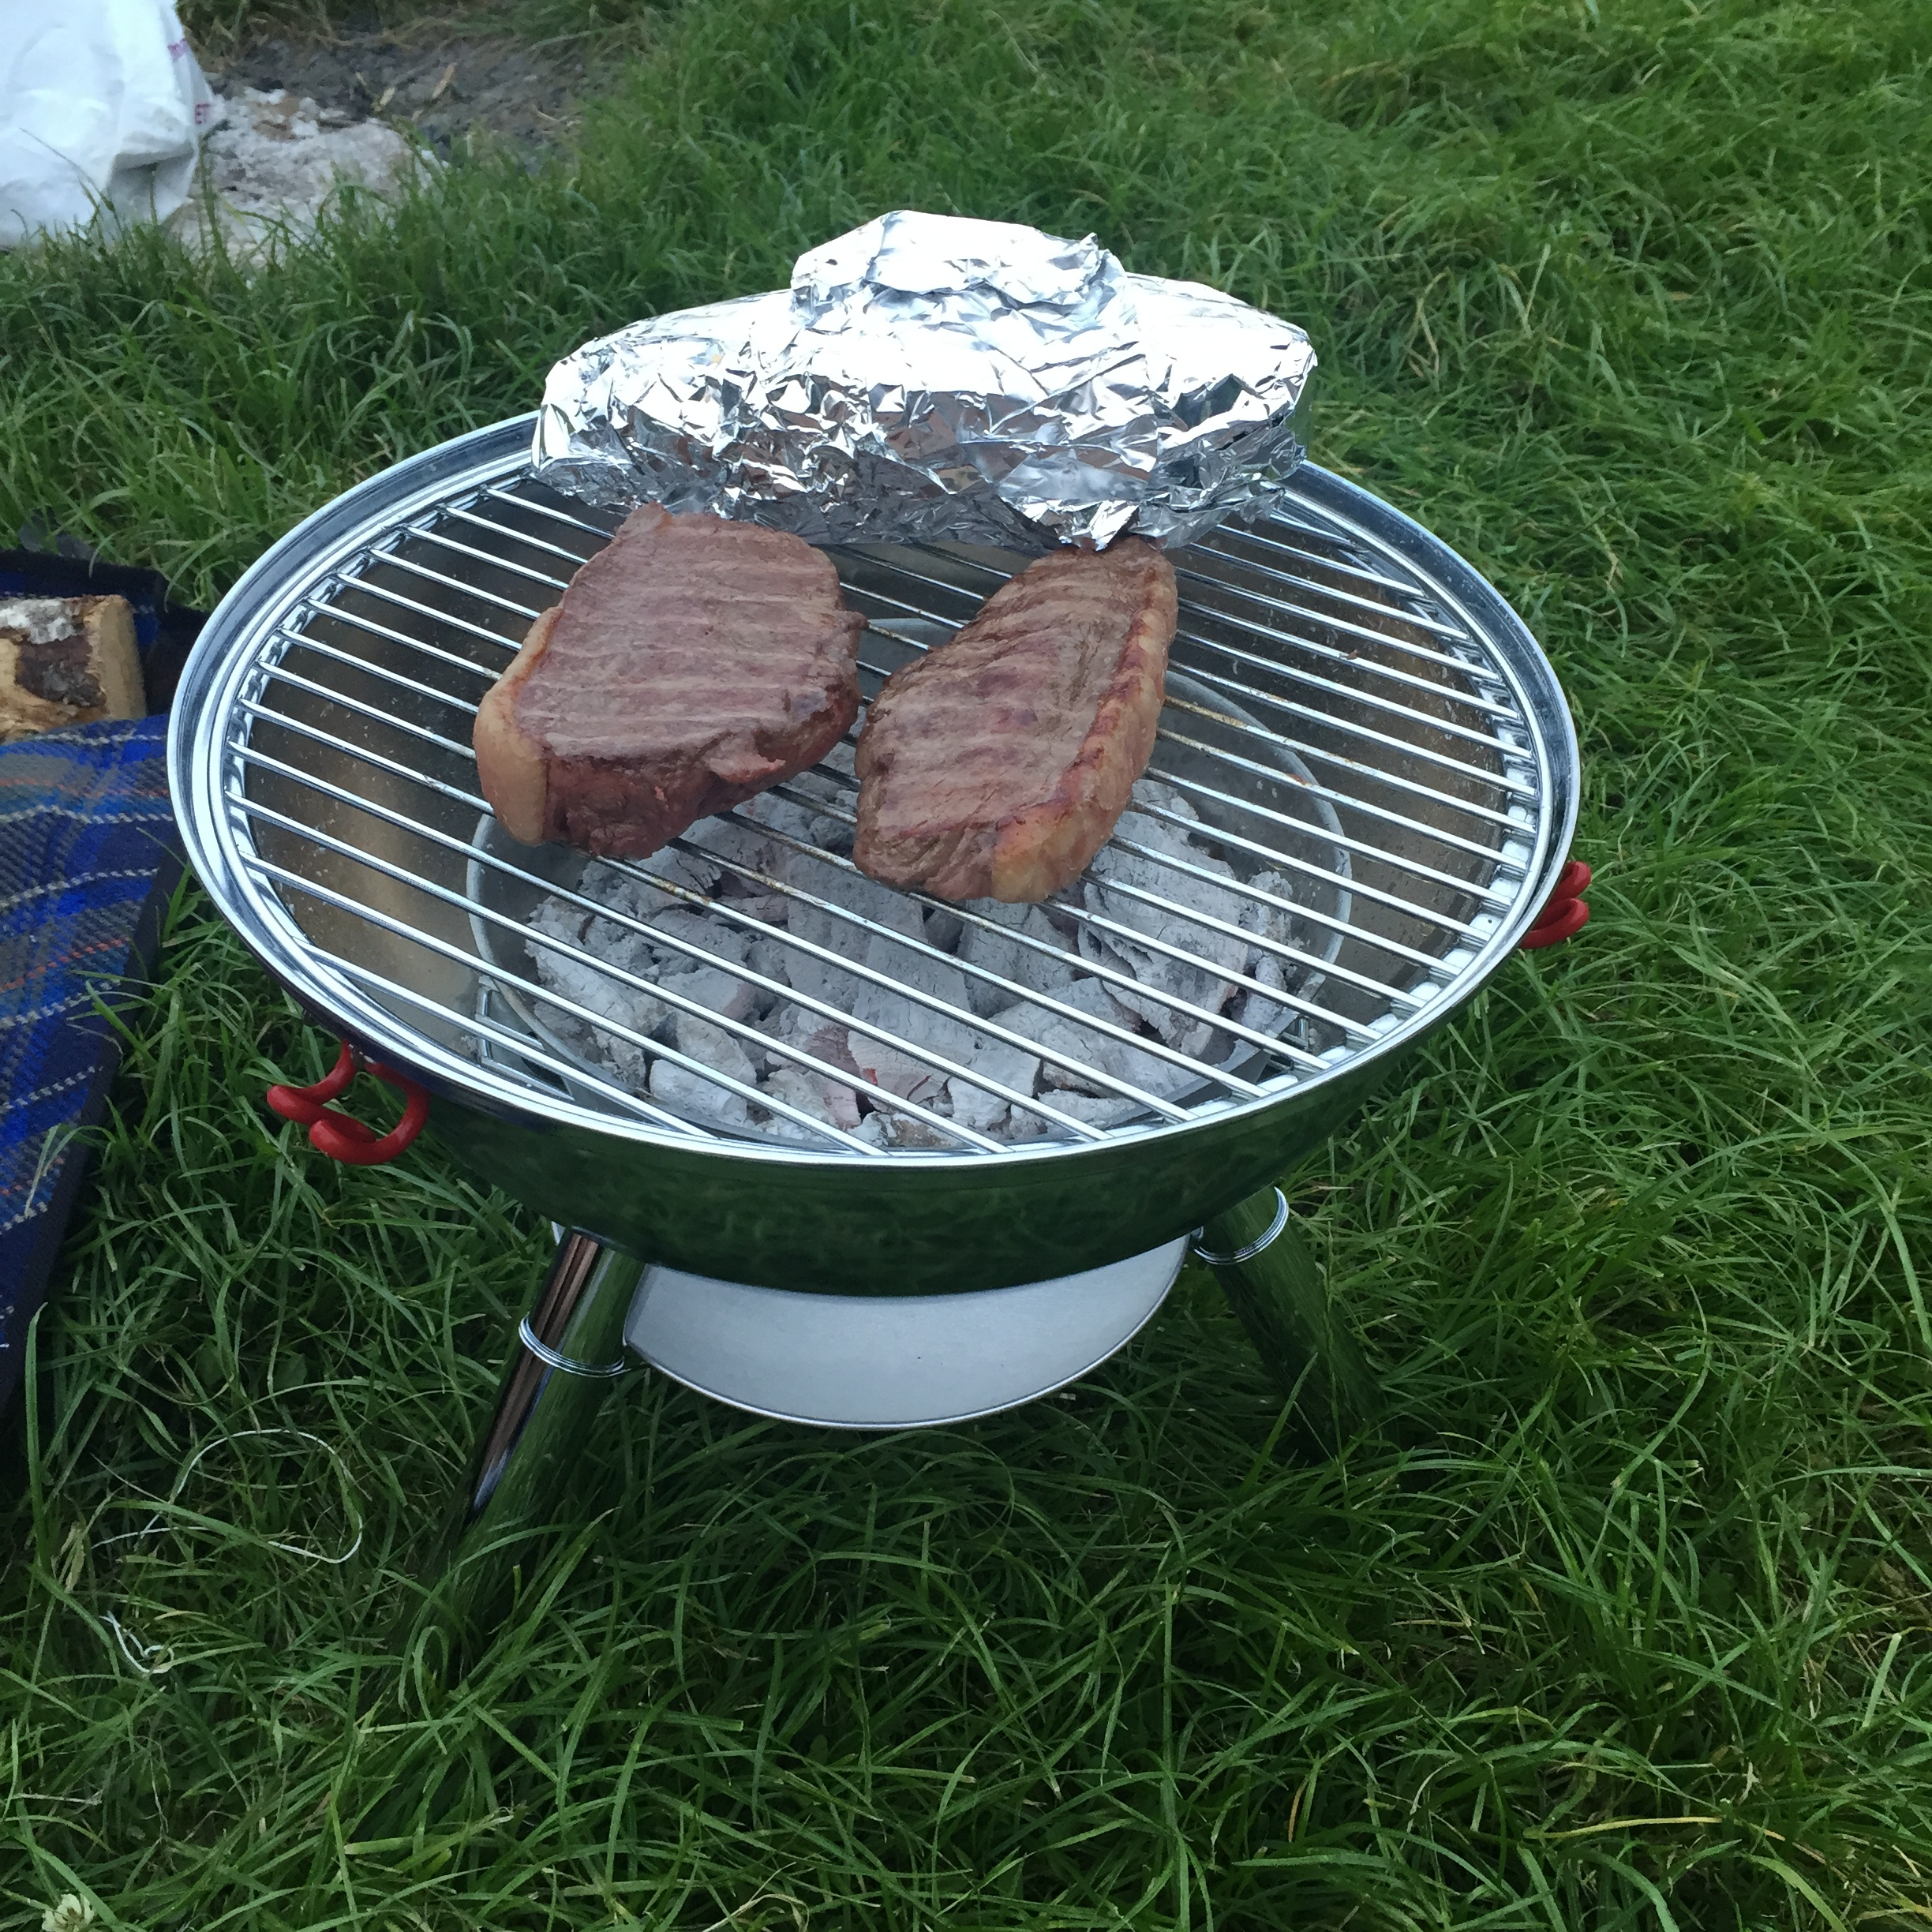 Rachel Redlaw camping steak barbecue